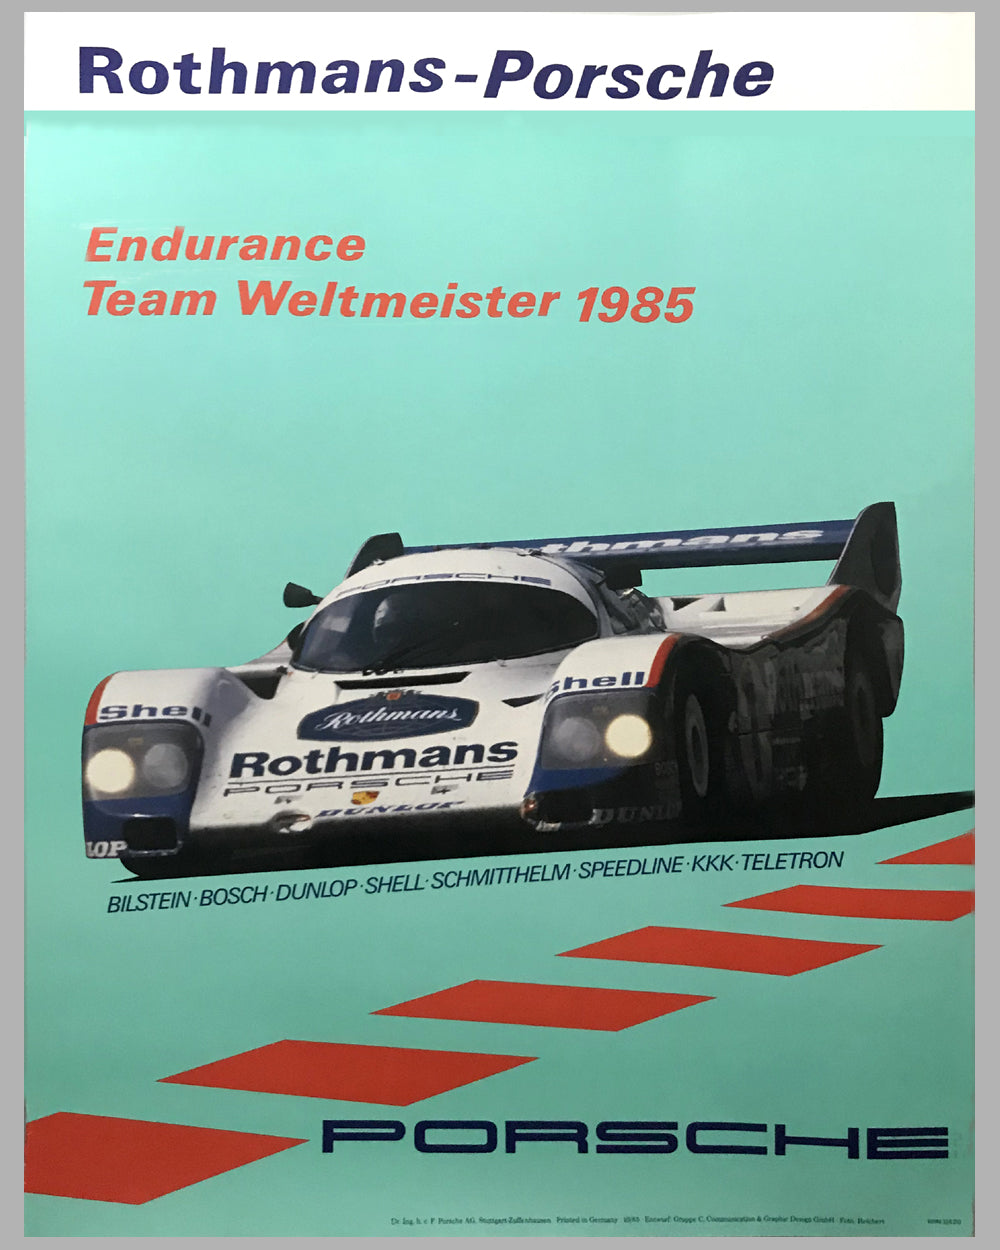 1985 World Endurance Manufacturer Champion Porsche Victory Poster